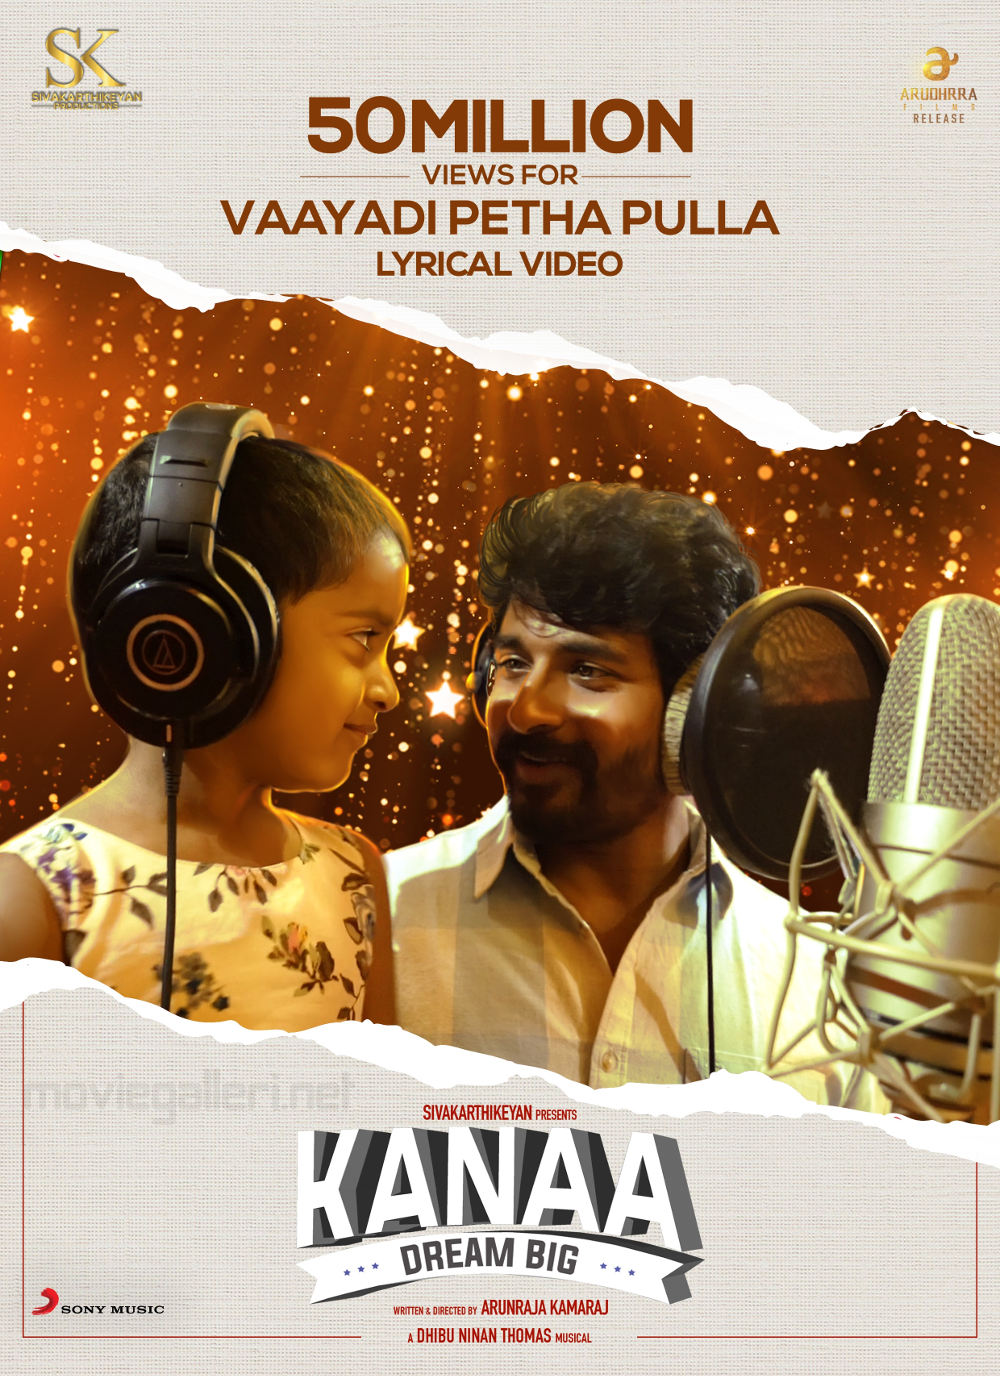 Vayadi Petha Pulla from Kanaa cross 50 Million views